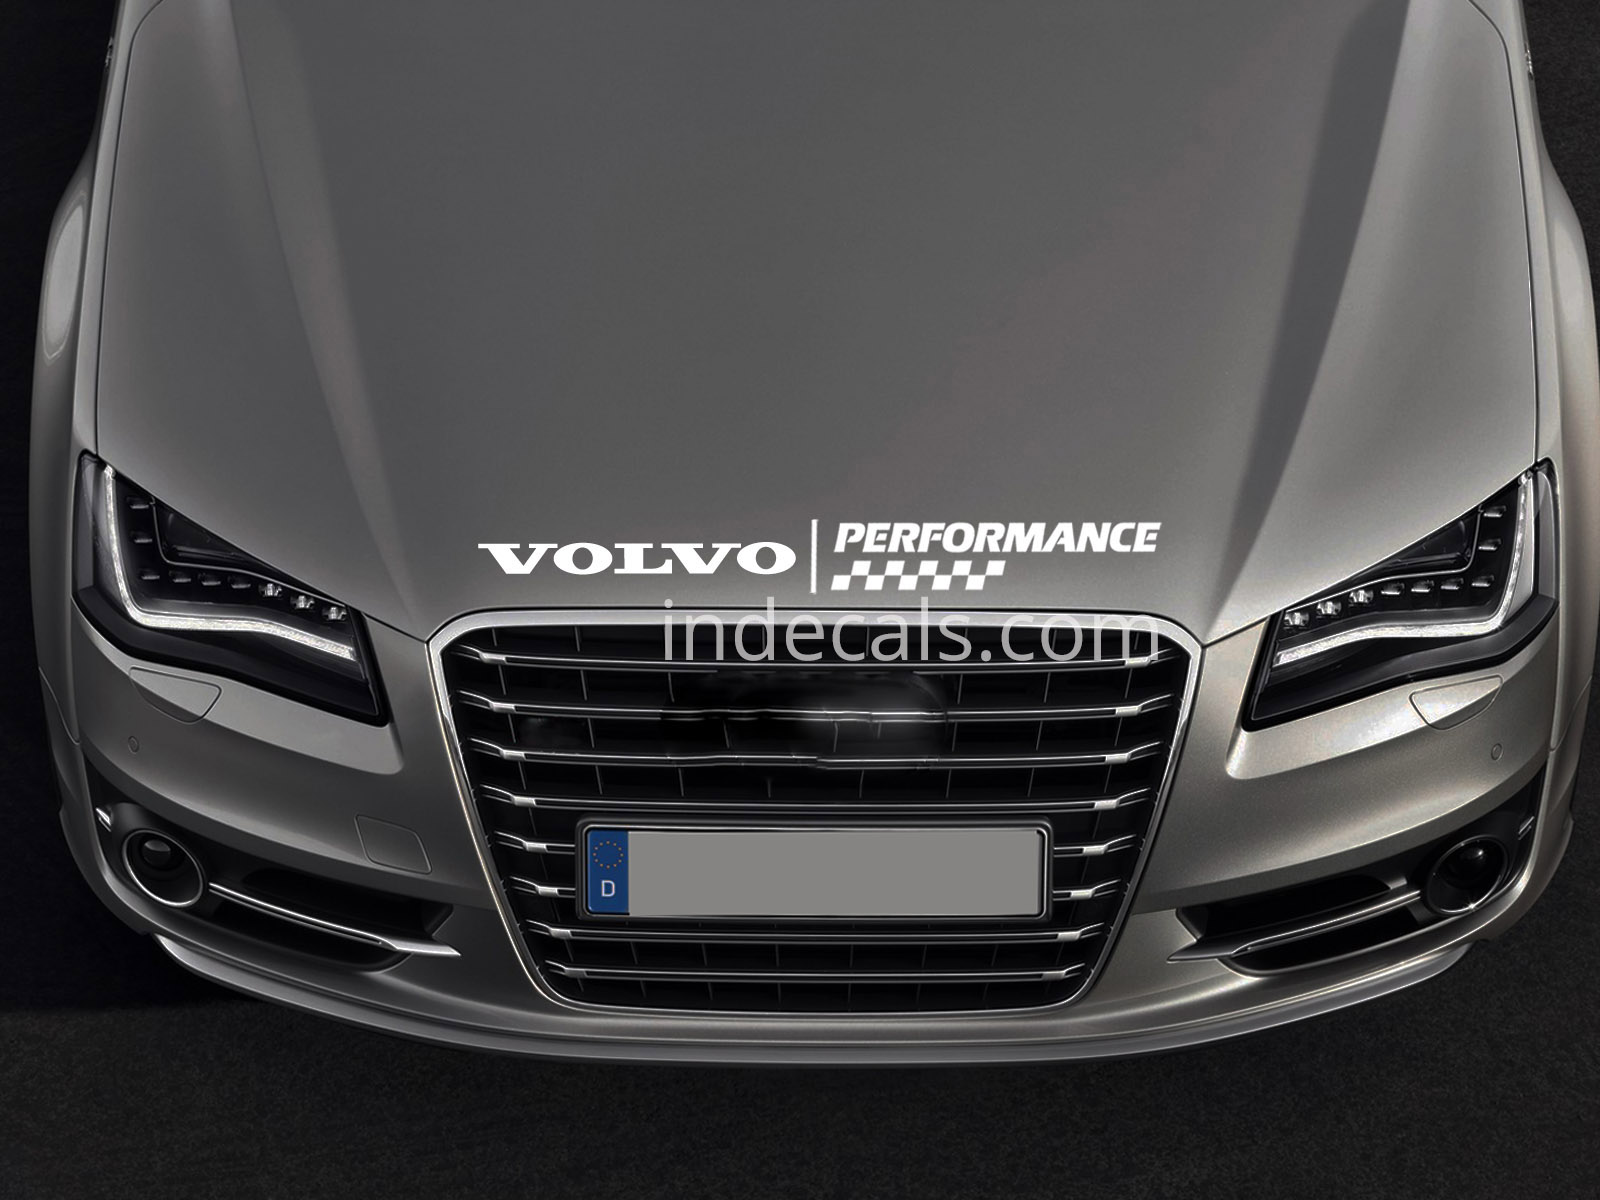 1 x Volvo Peformance Sticker for Bonnet - White